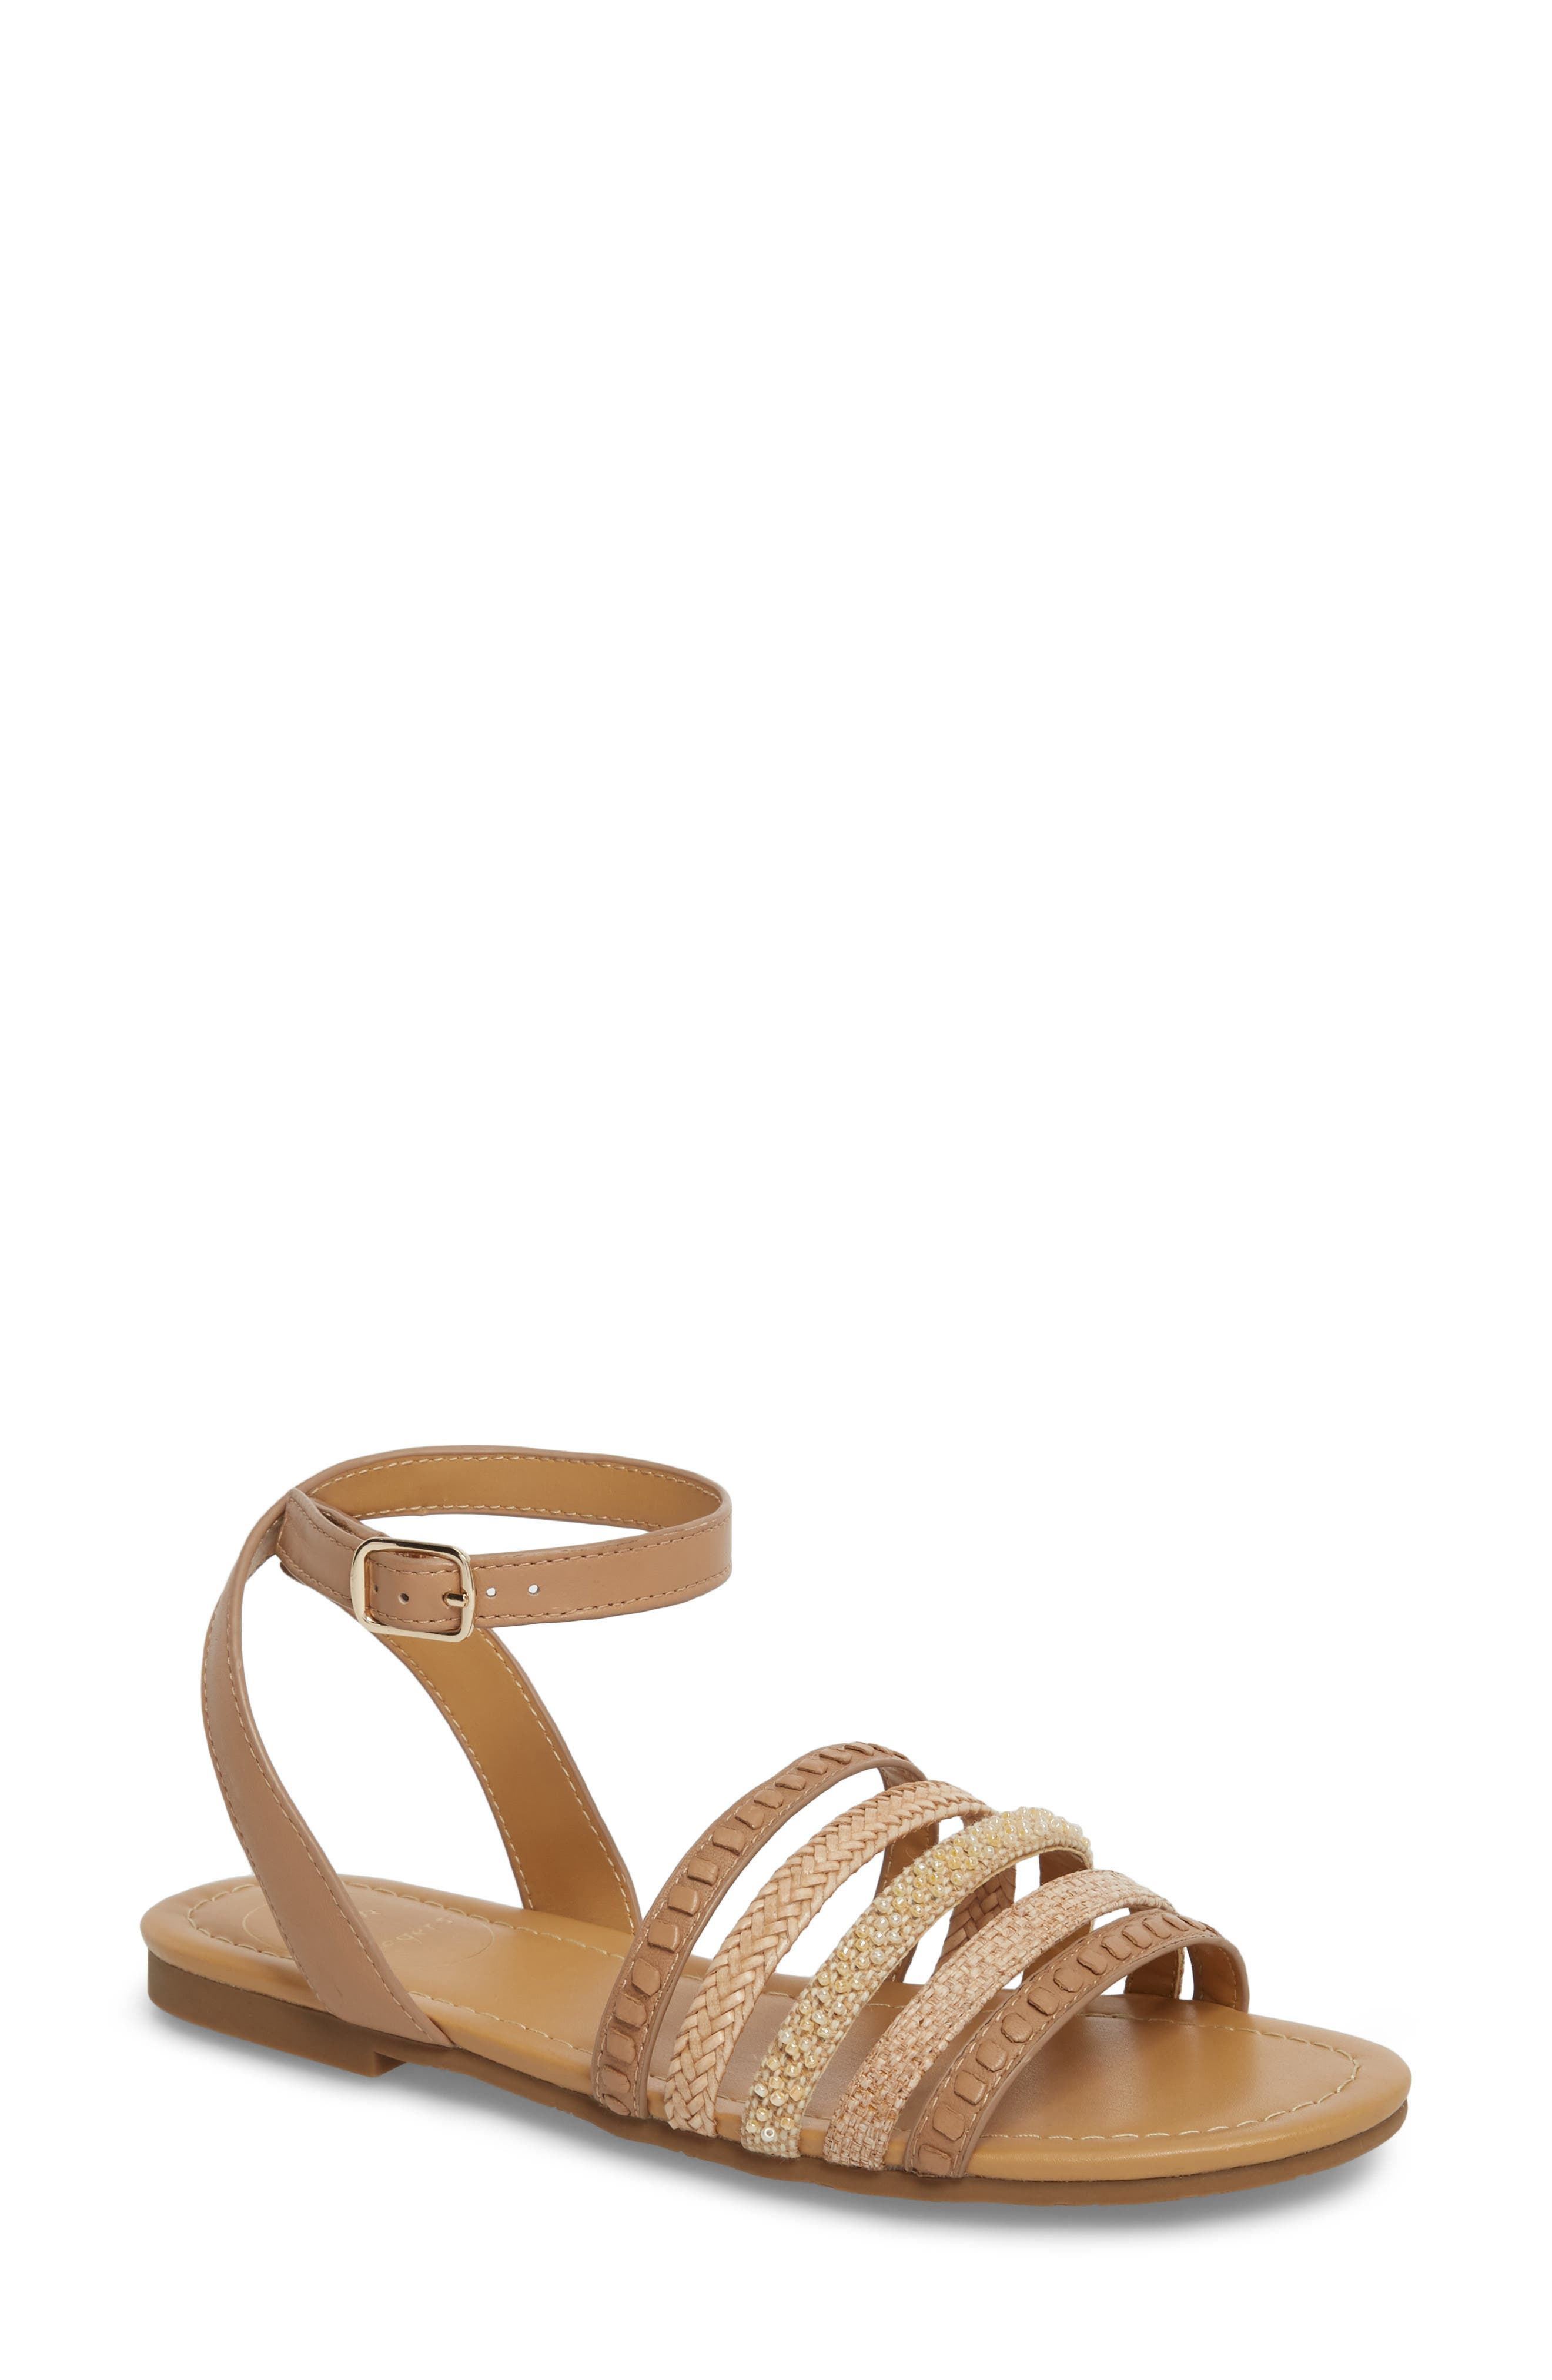 Hannah Braided Embellished Sandal,                             Main thumbnail 1, color,                             BUFF LEATHER